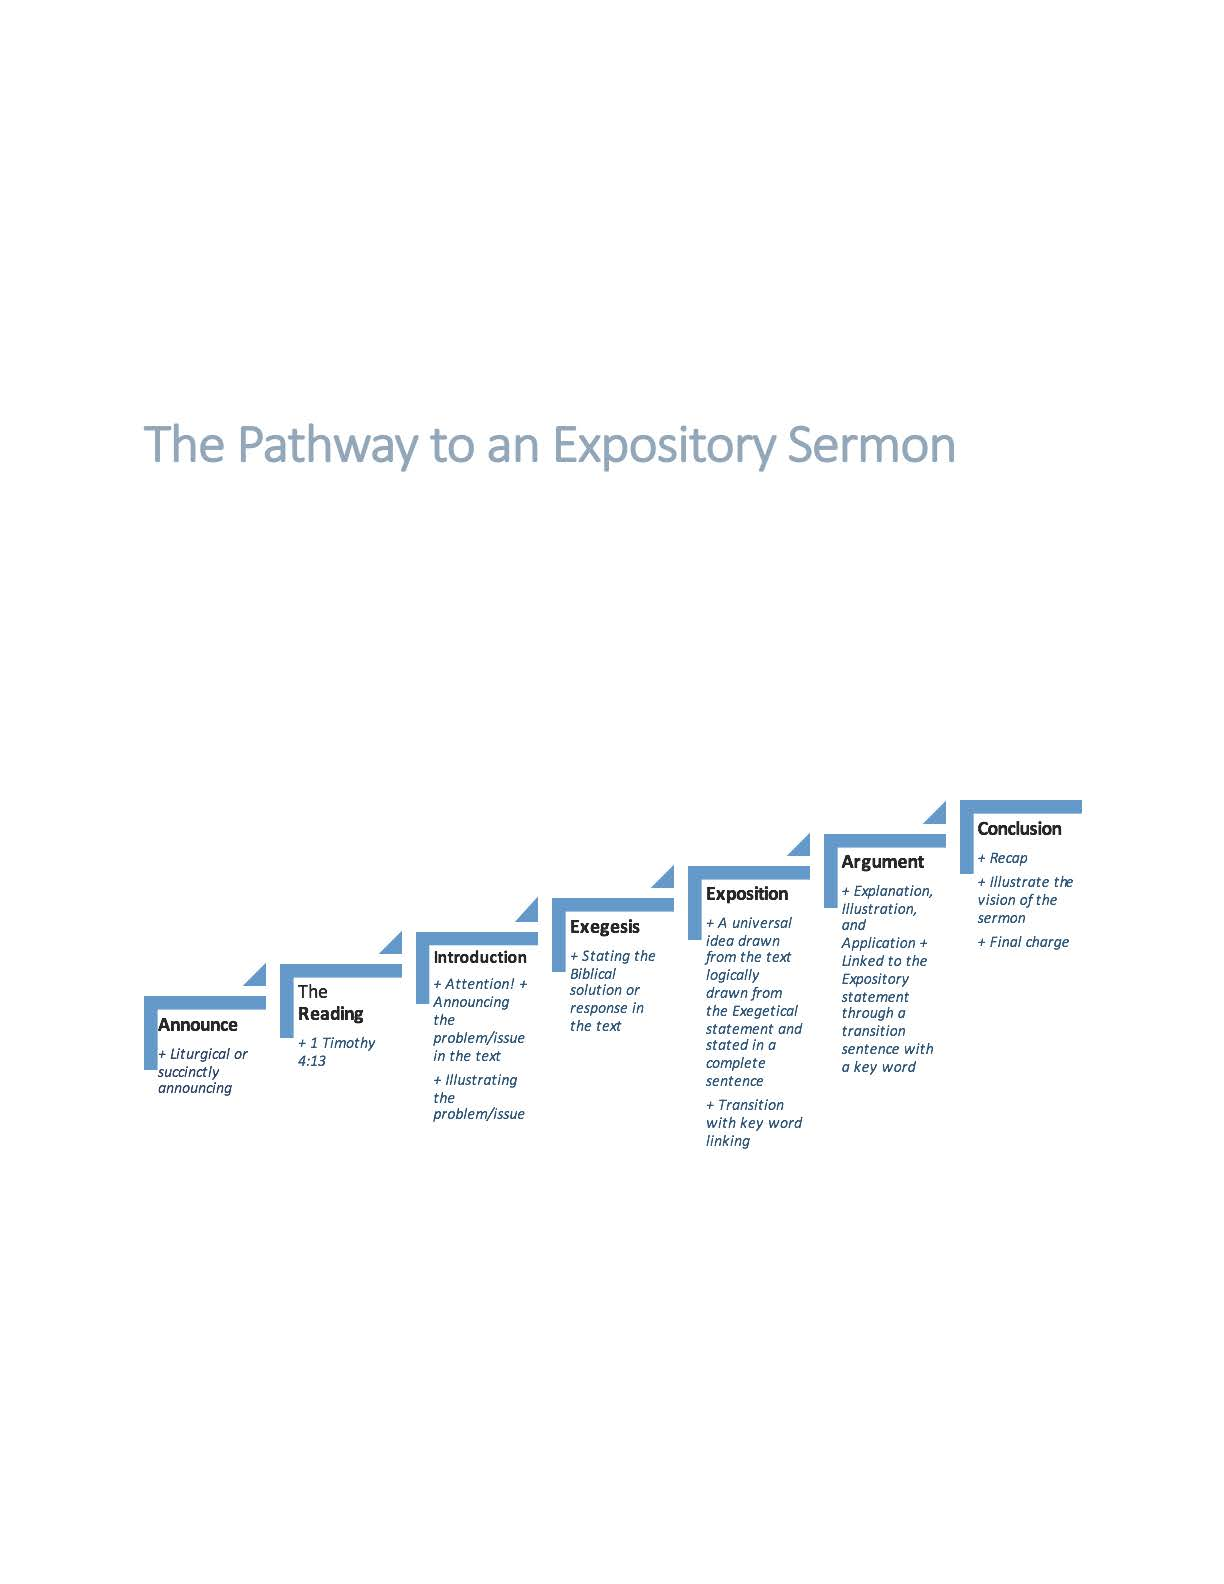 steps-to-an-expository-sermon